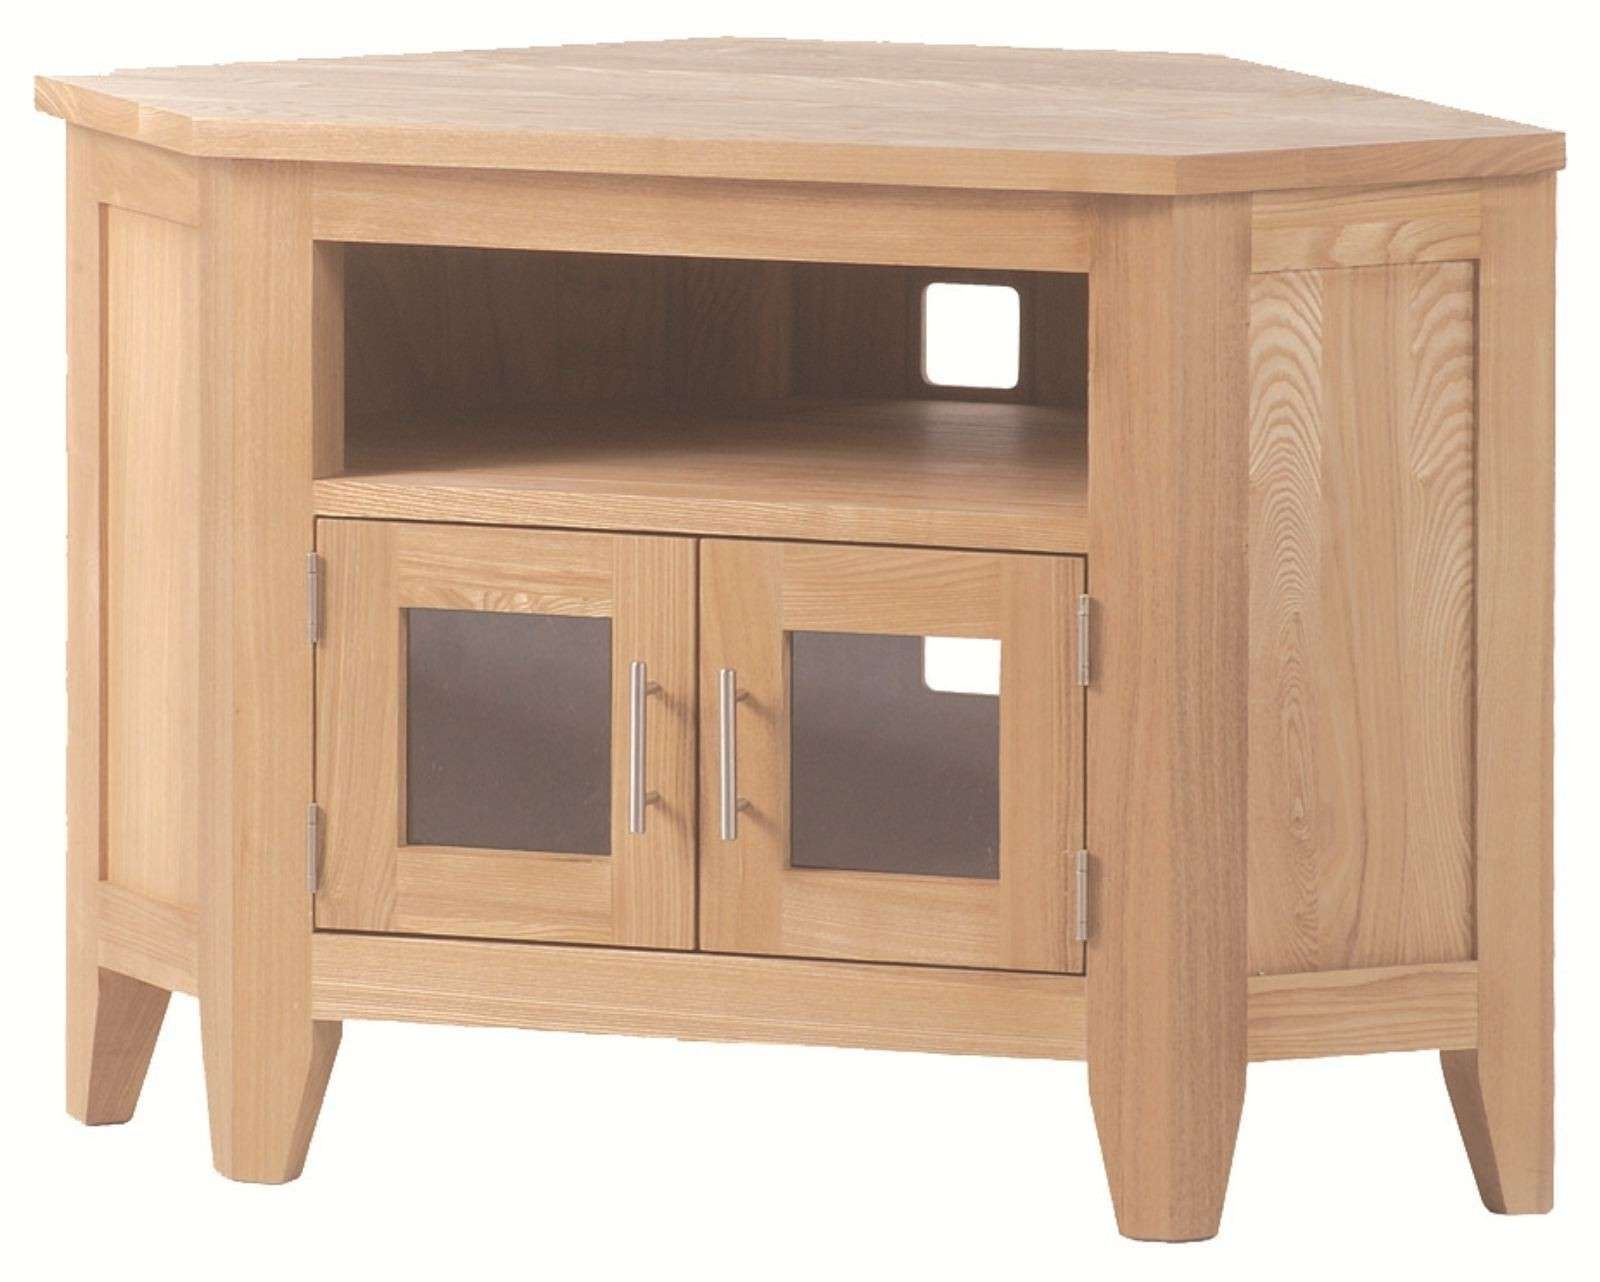 Merveilleux Wooden Corner Tv Stand With Small Cabinet Doors And Silver Handle  Throughout Small Corner Tv Cabinets